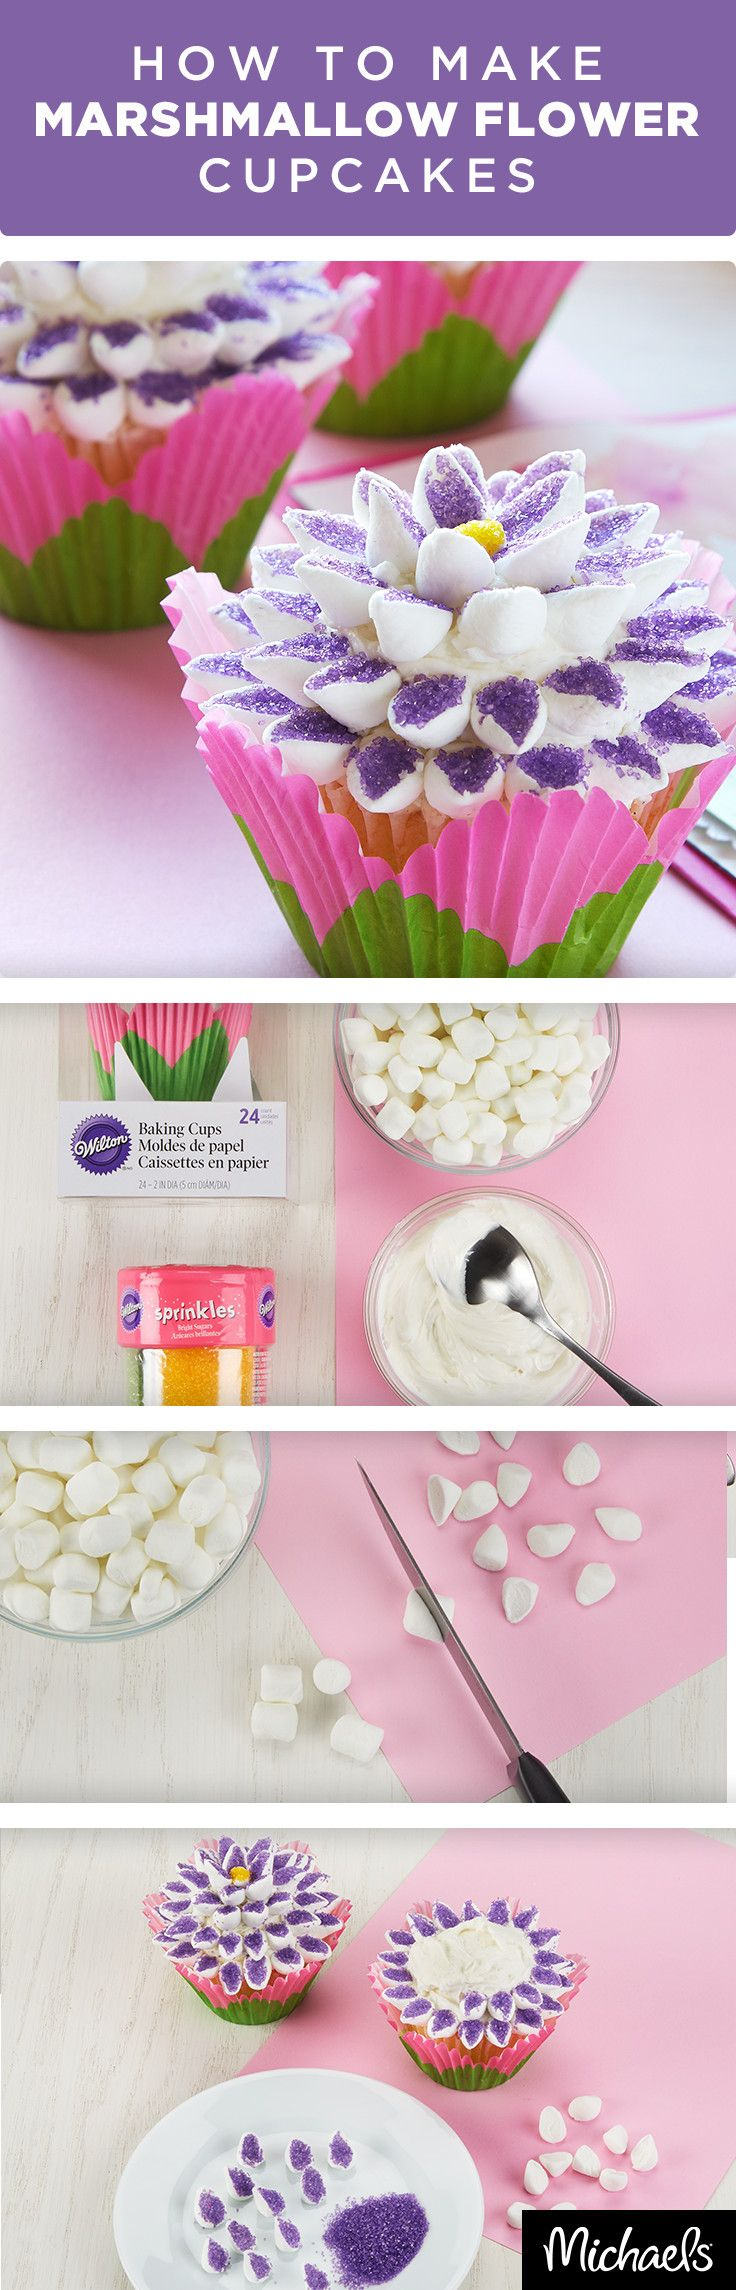 Celebrate Spring with sweet flower-topped cupcakes. Can you believe these flowers are made from marshmallows? It's so easy, anyone can do it! Get the tutorial and everything you need to make this project on Michaels.com